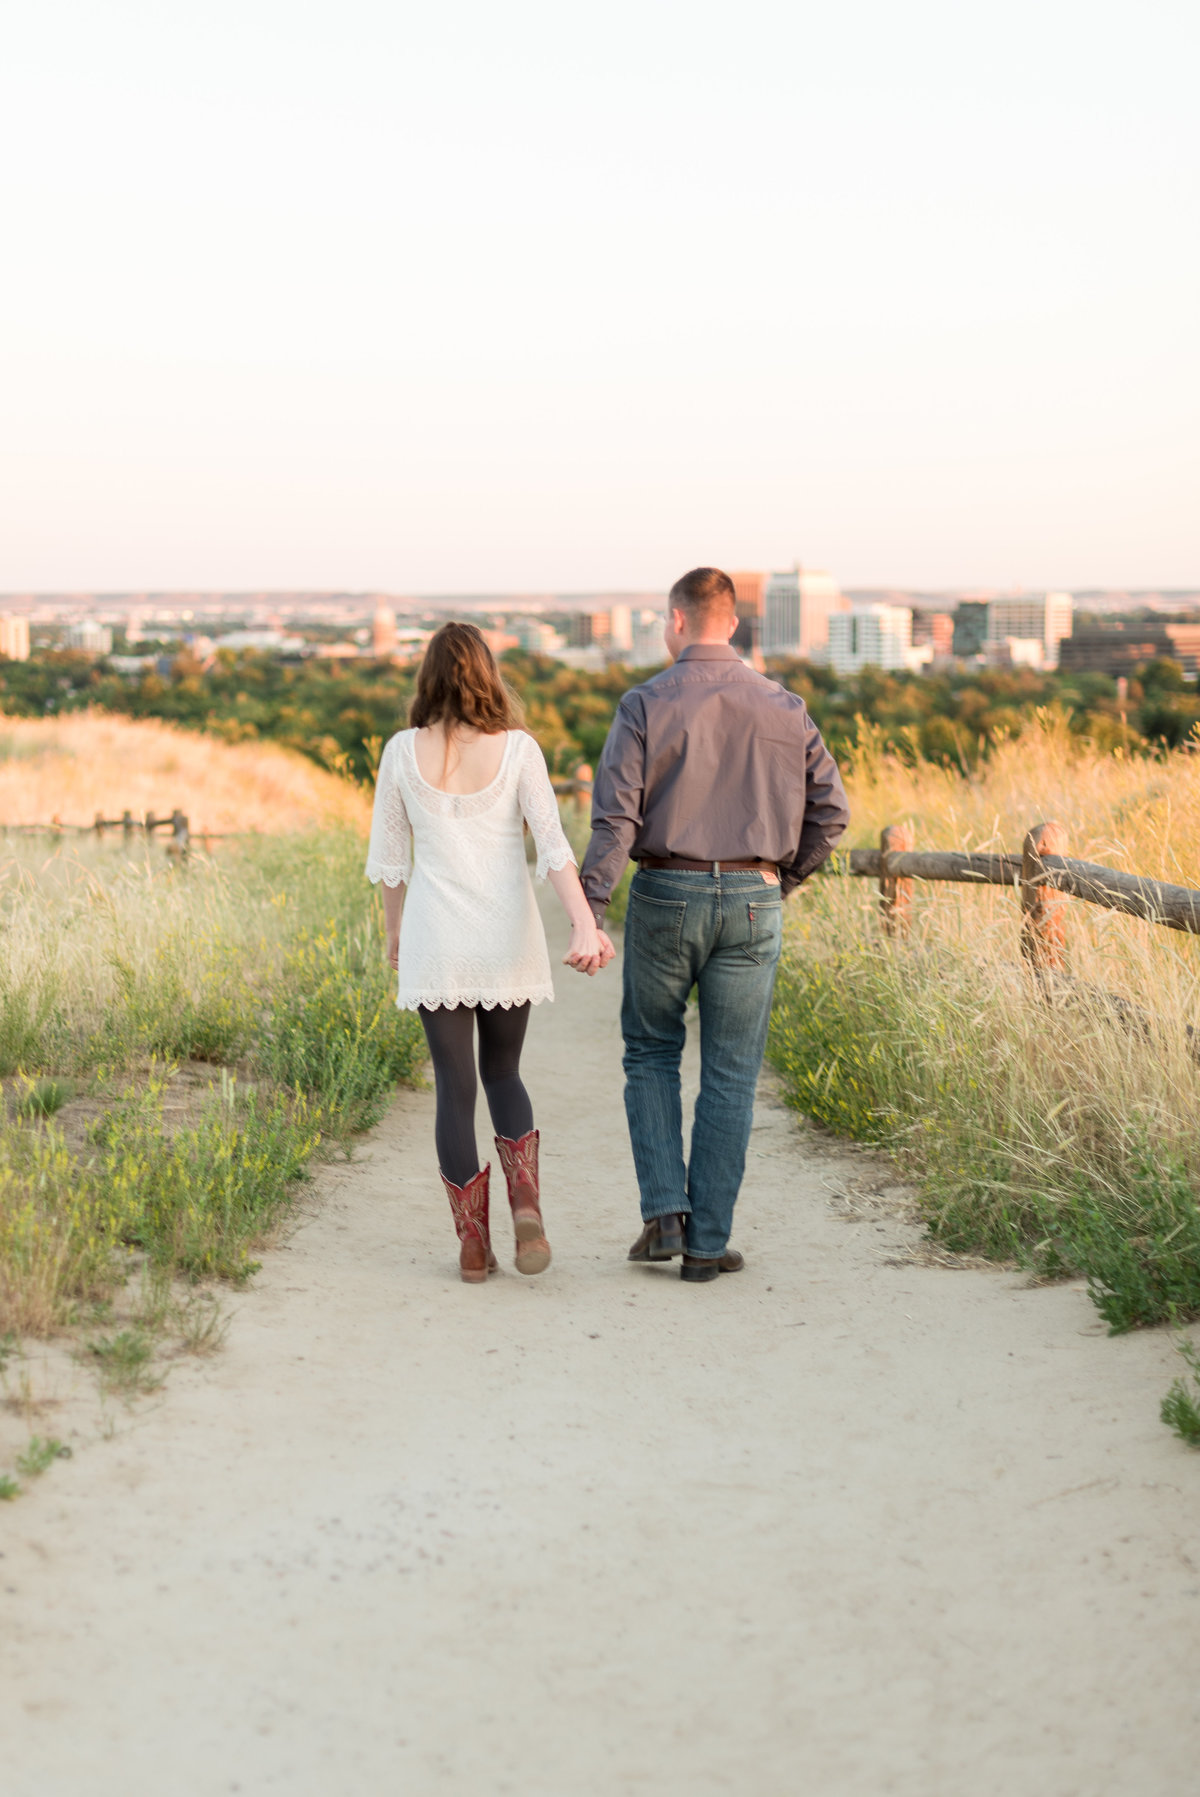 Spring Boise Foothills Engagement Shoot18